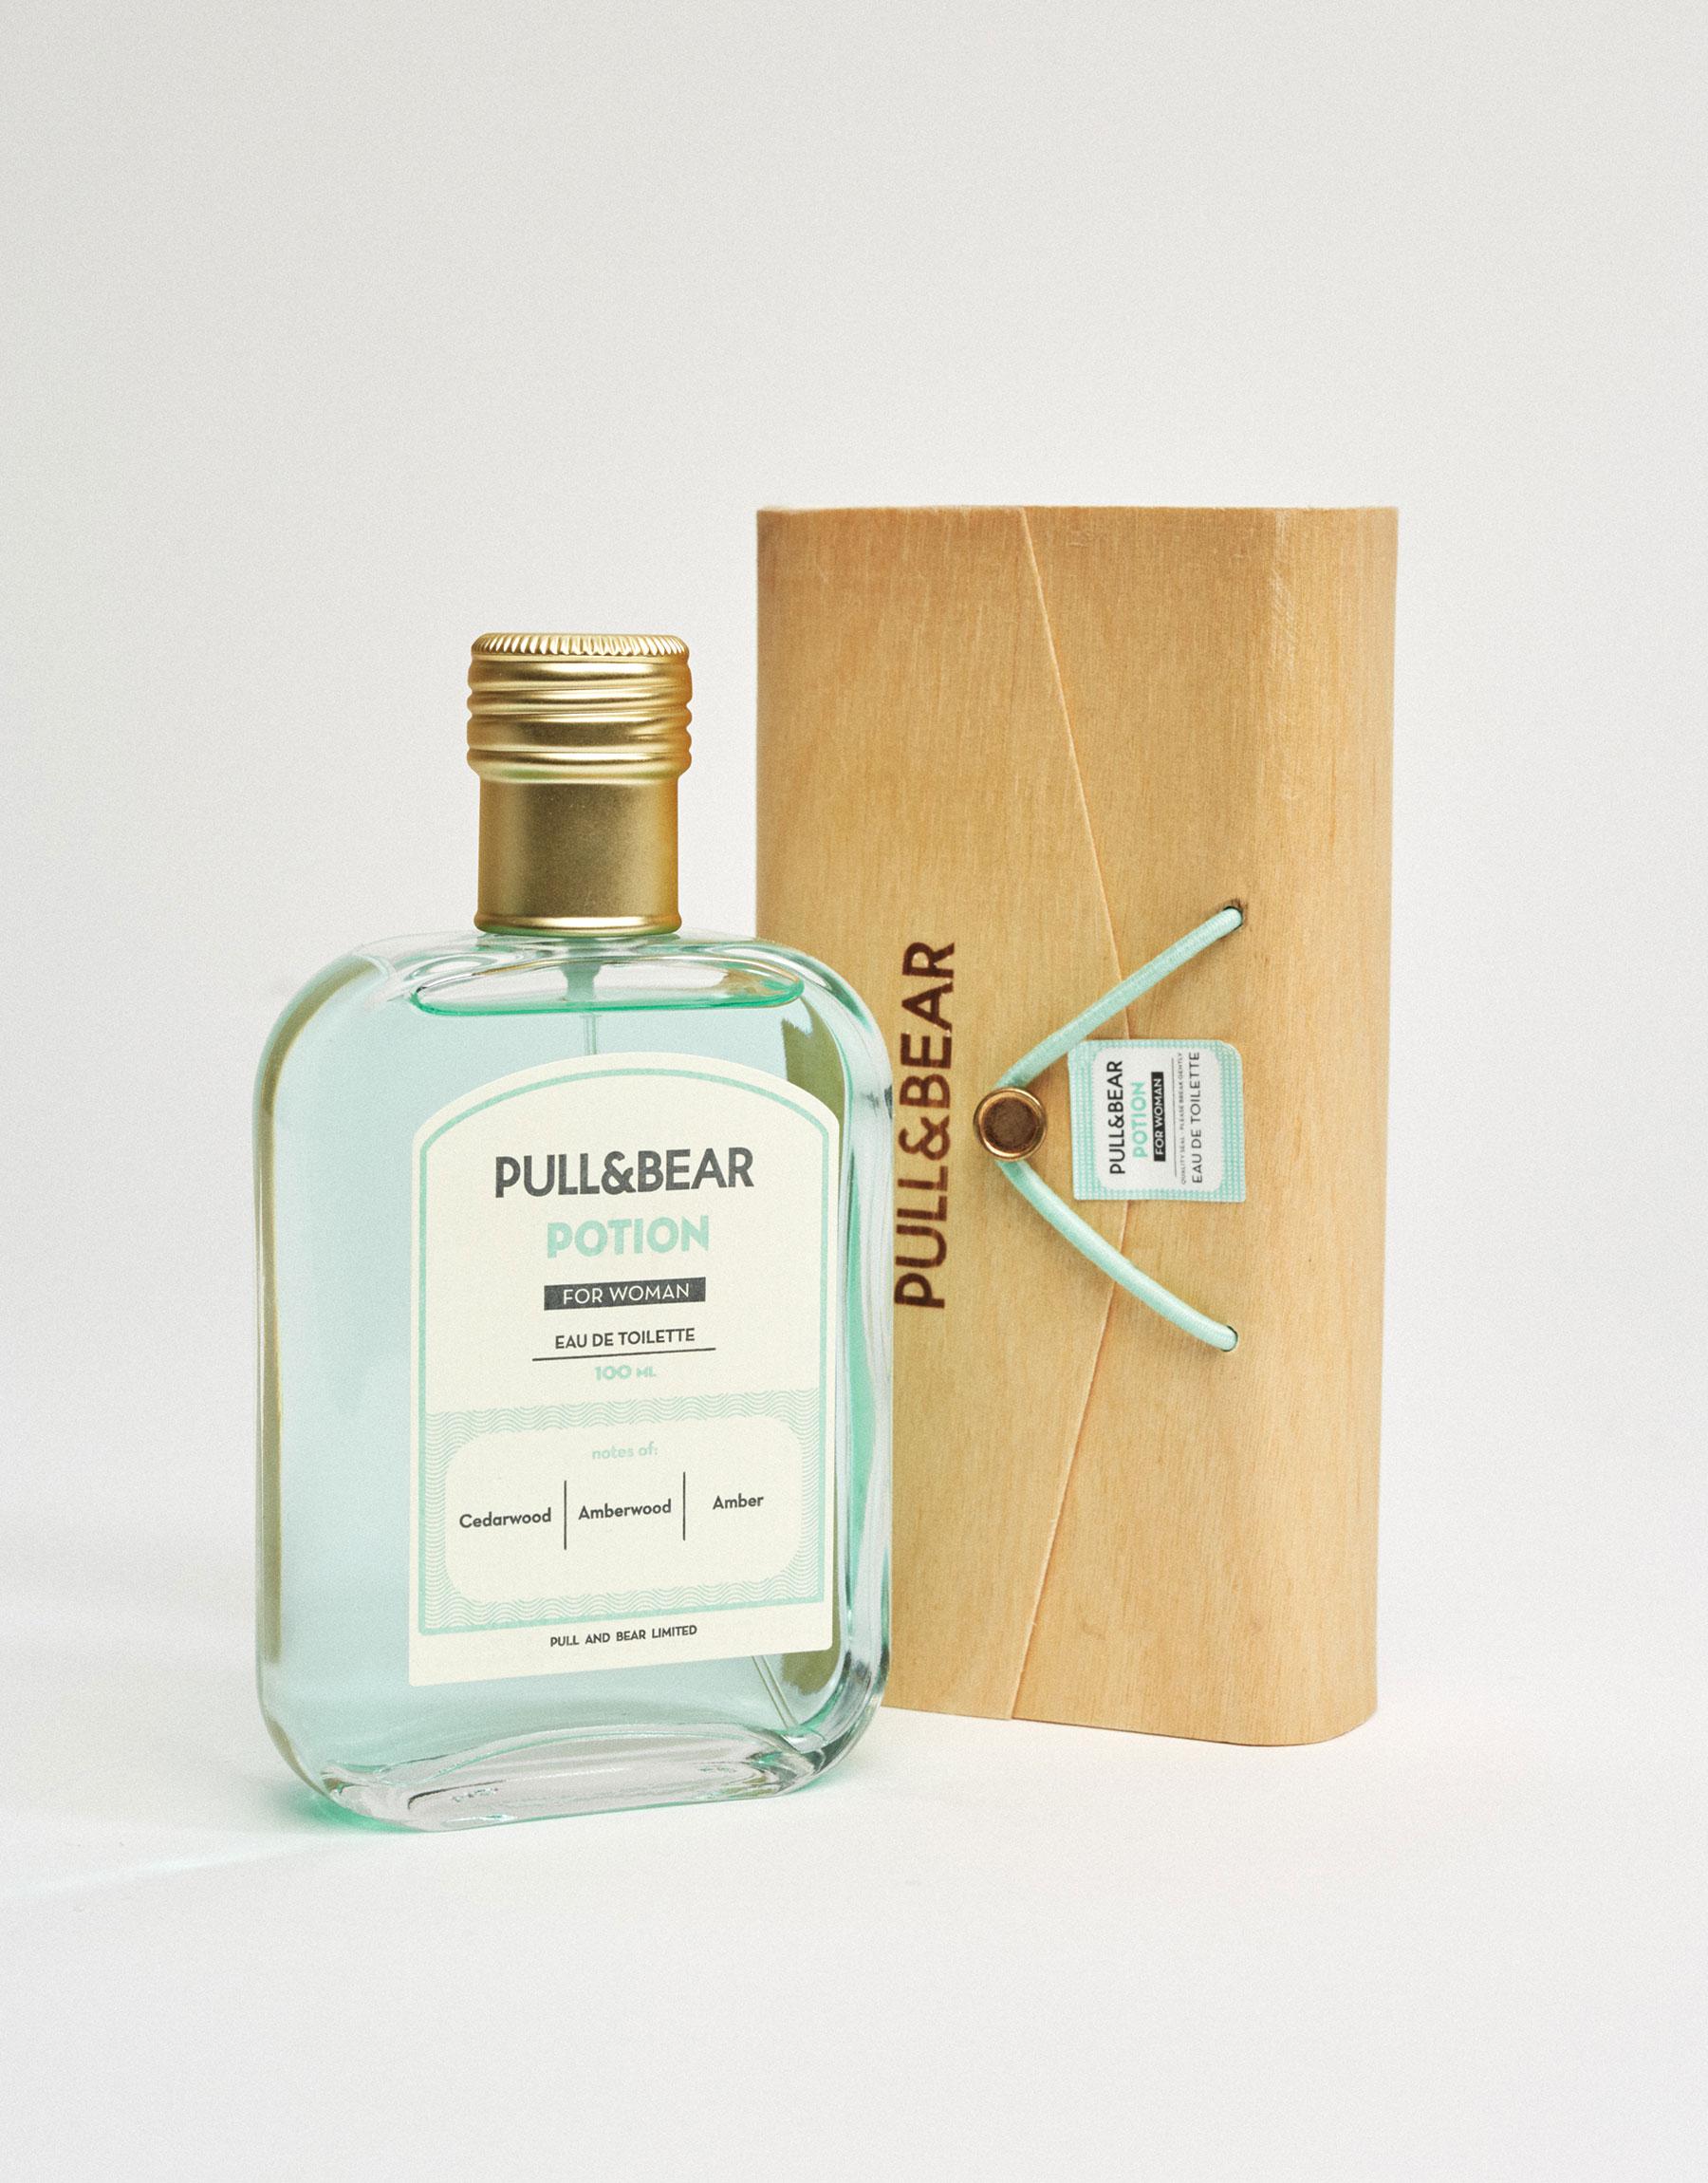 Pull & bear potion woman fragrance